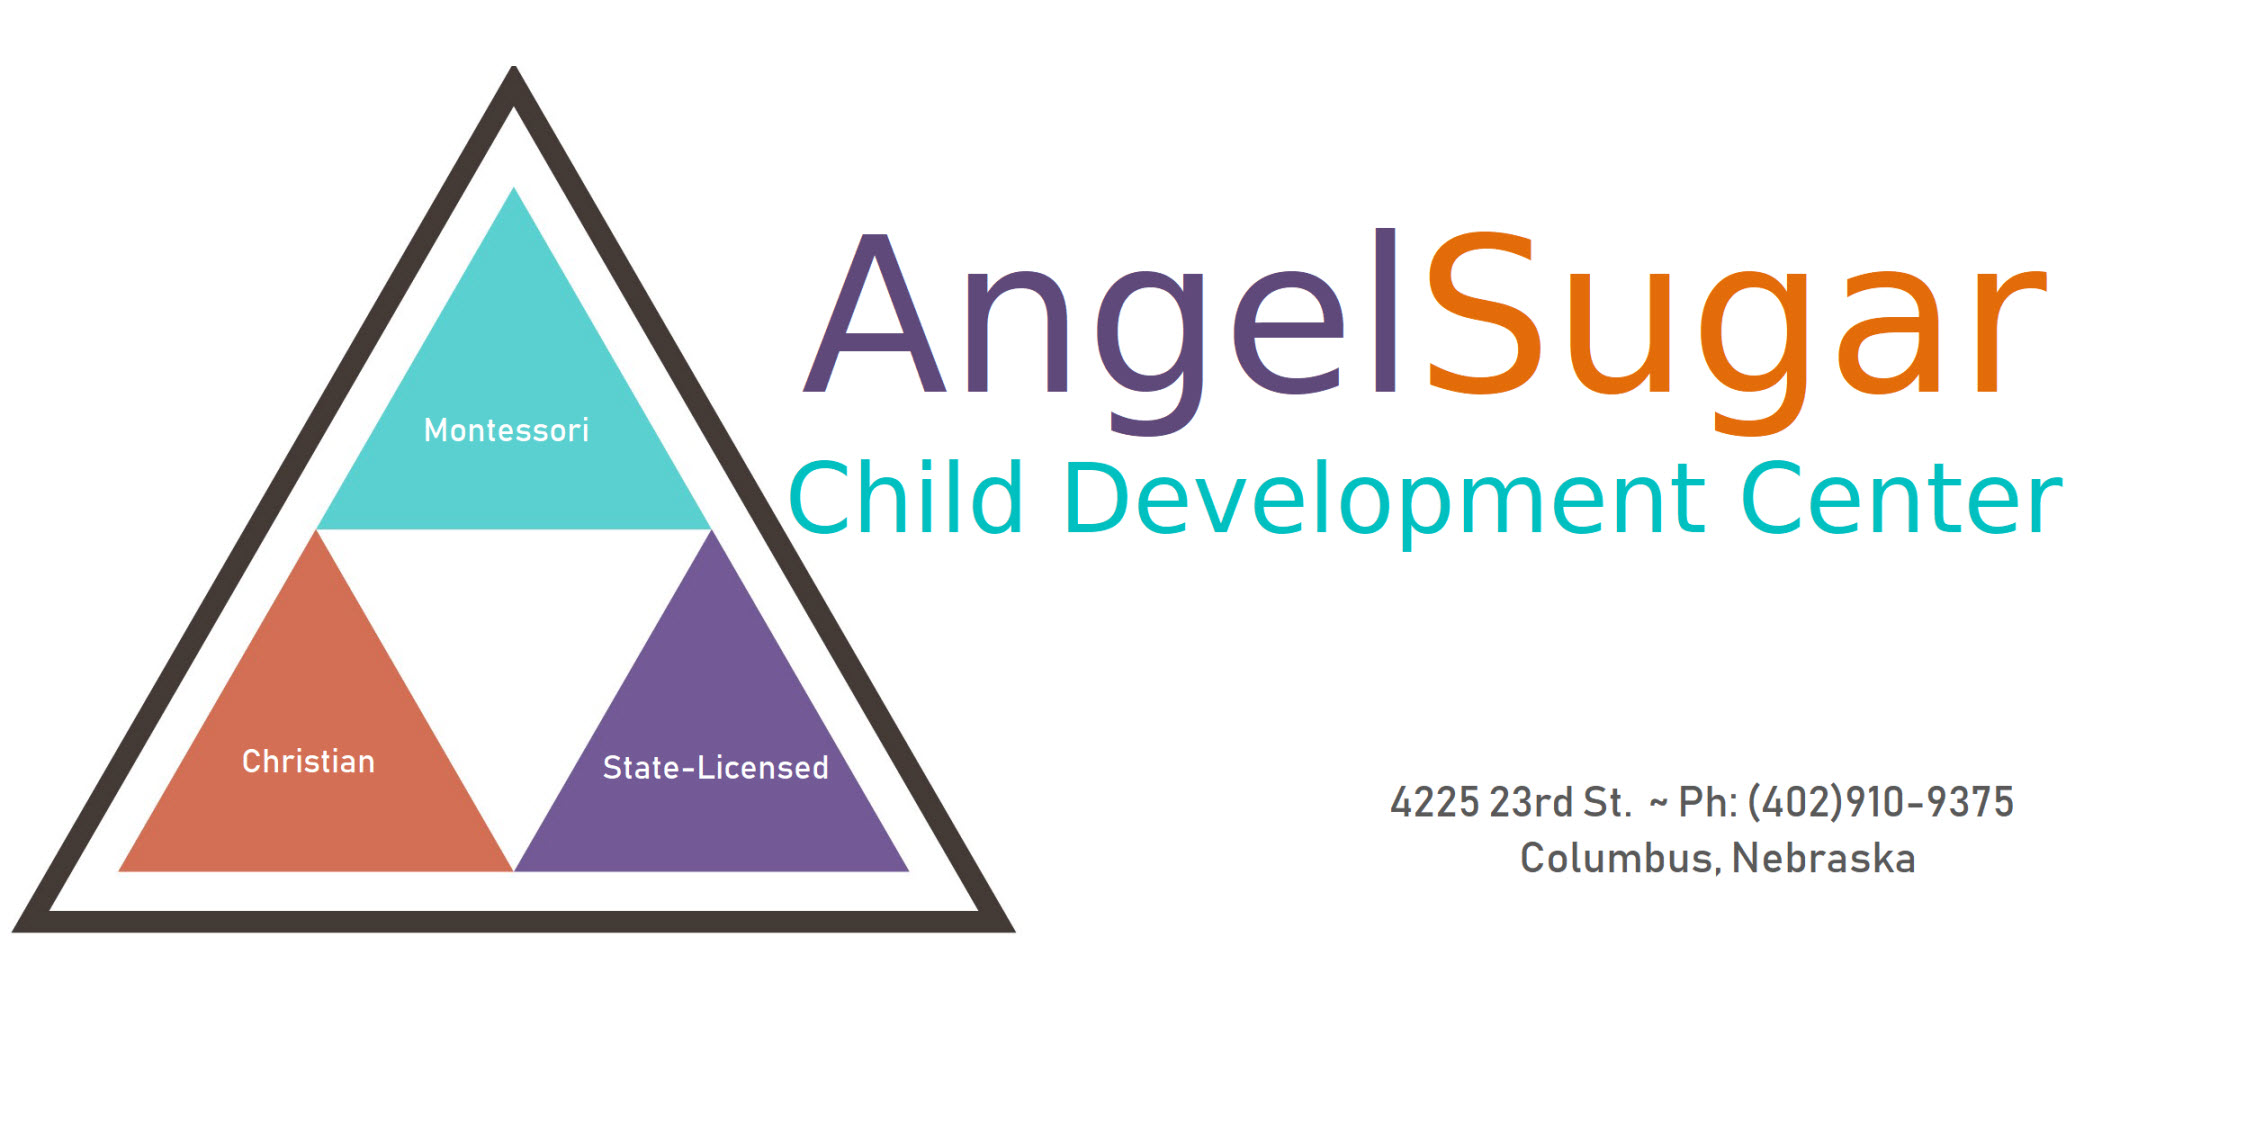 ANGELSUGAR PRESCHOOL, INC.